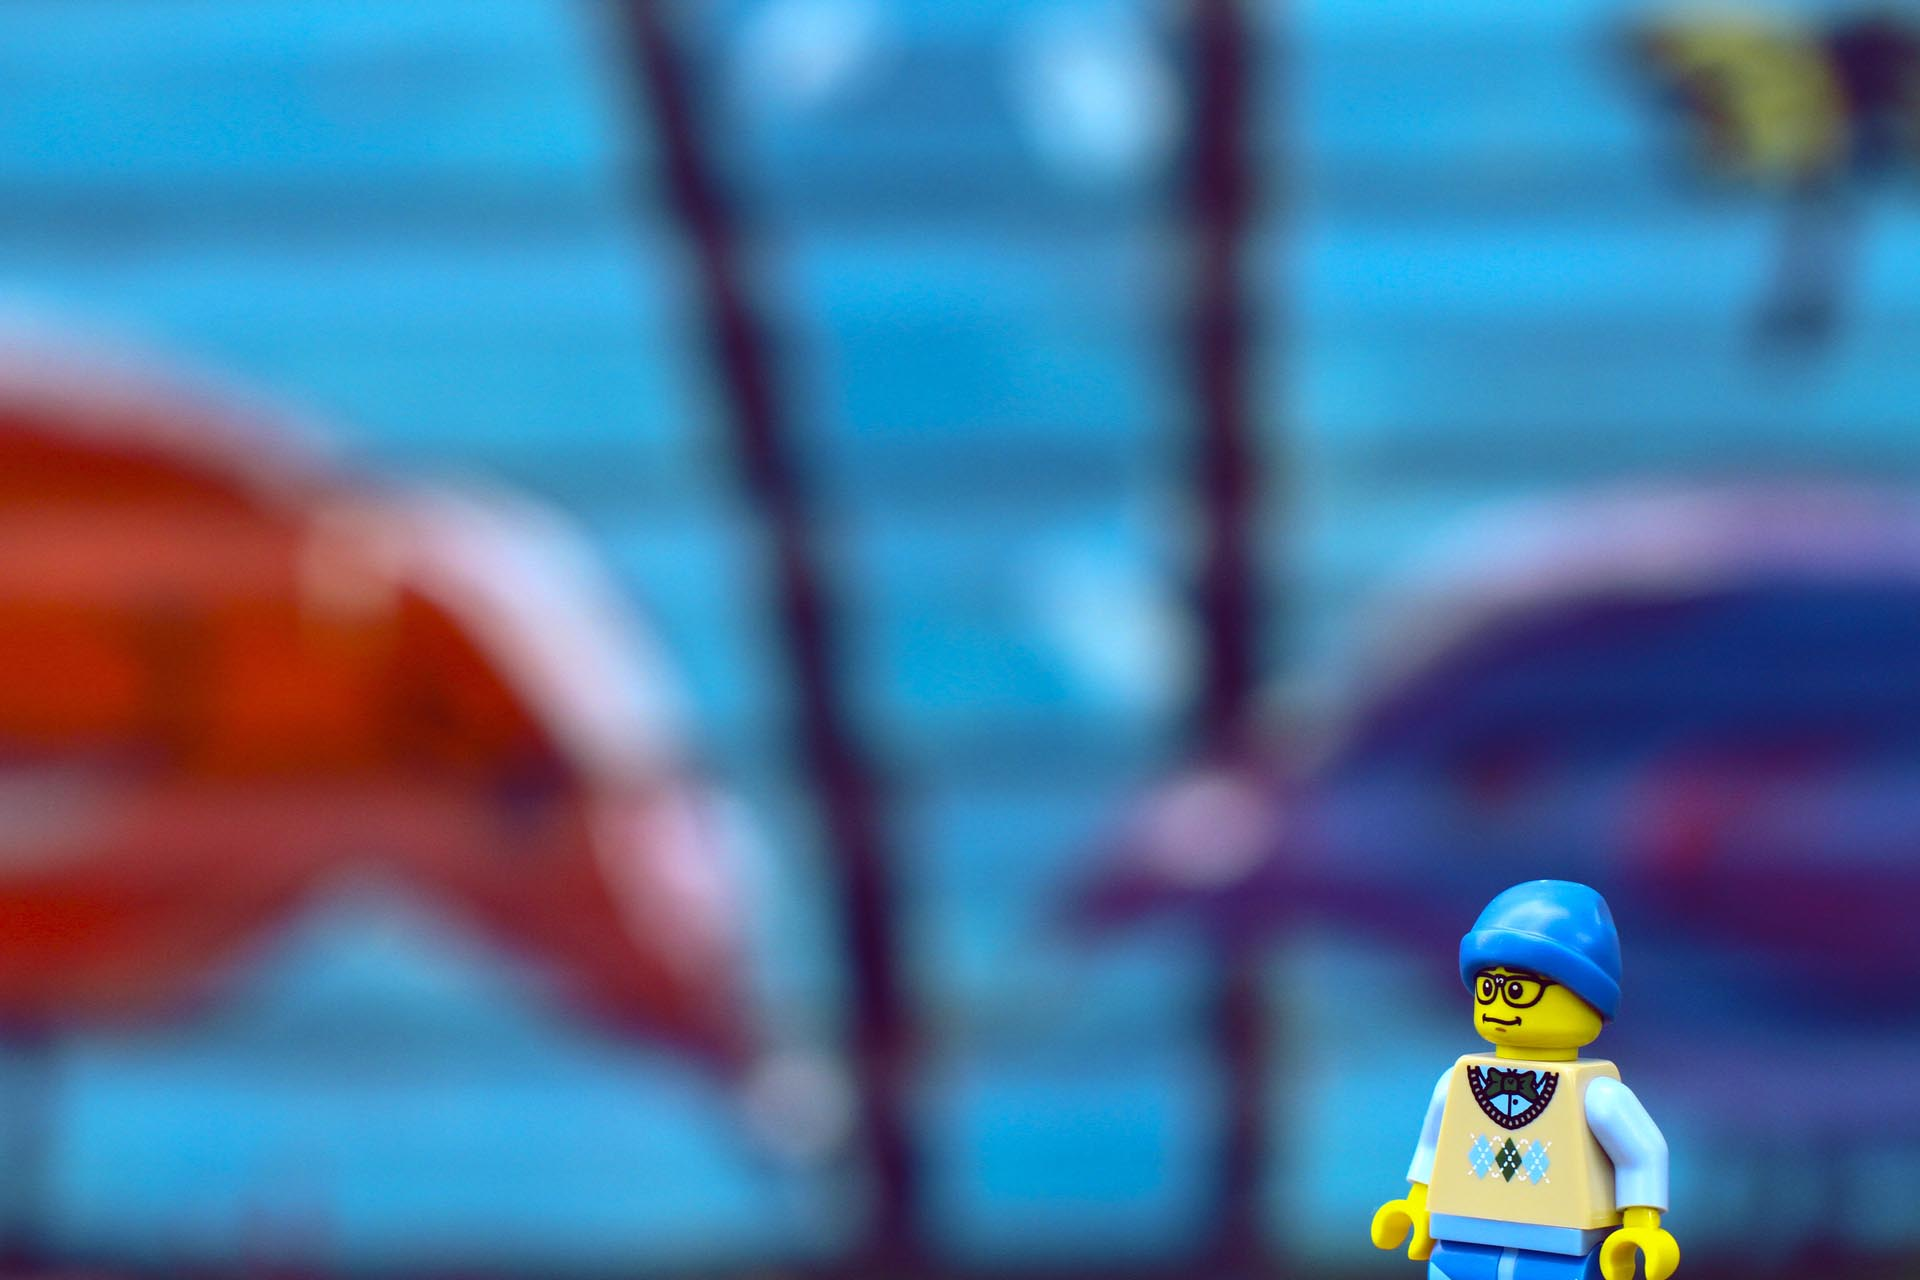 Hipster lego wallpaper 48988 1920x1280 px hipster lego wallpaper 48988 voltagebd Choice Image